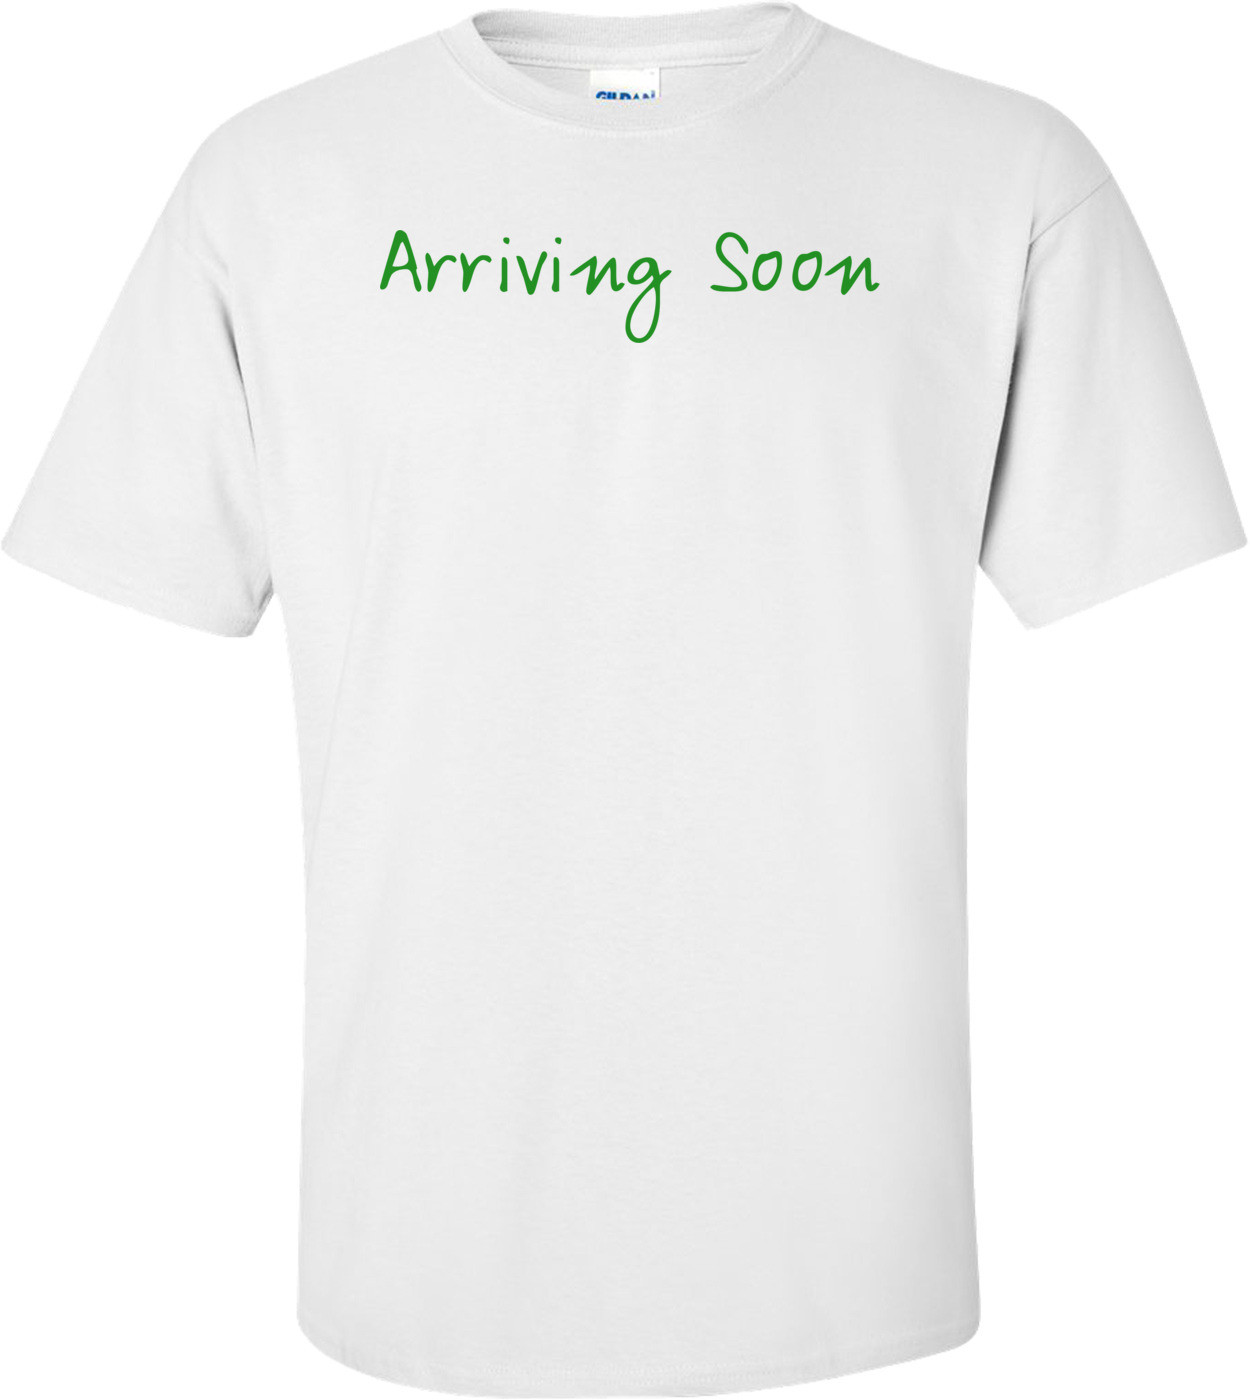 Arriving Soon - Maternity Shirt